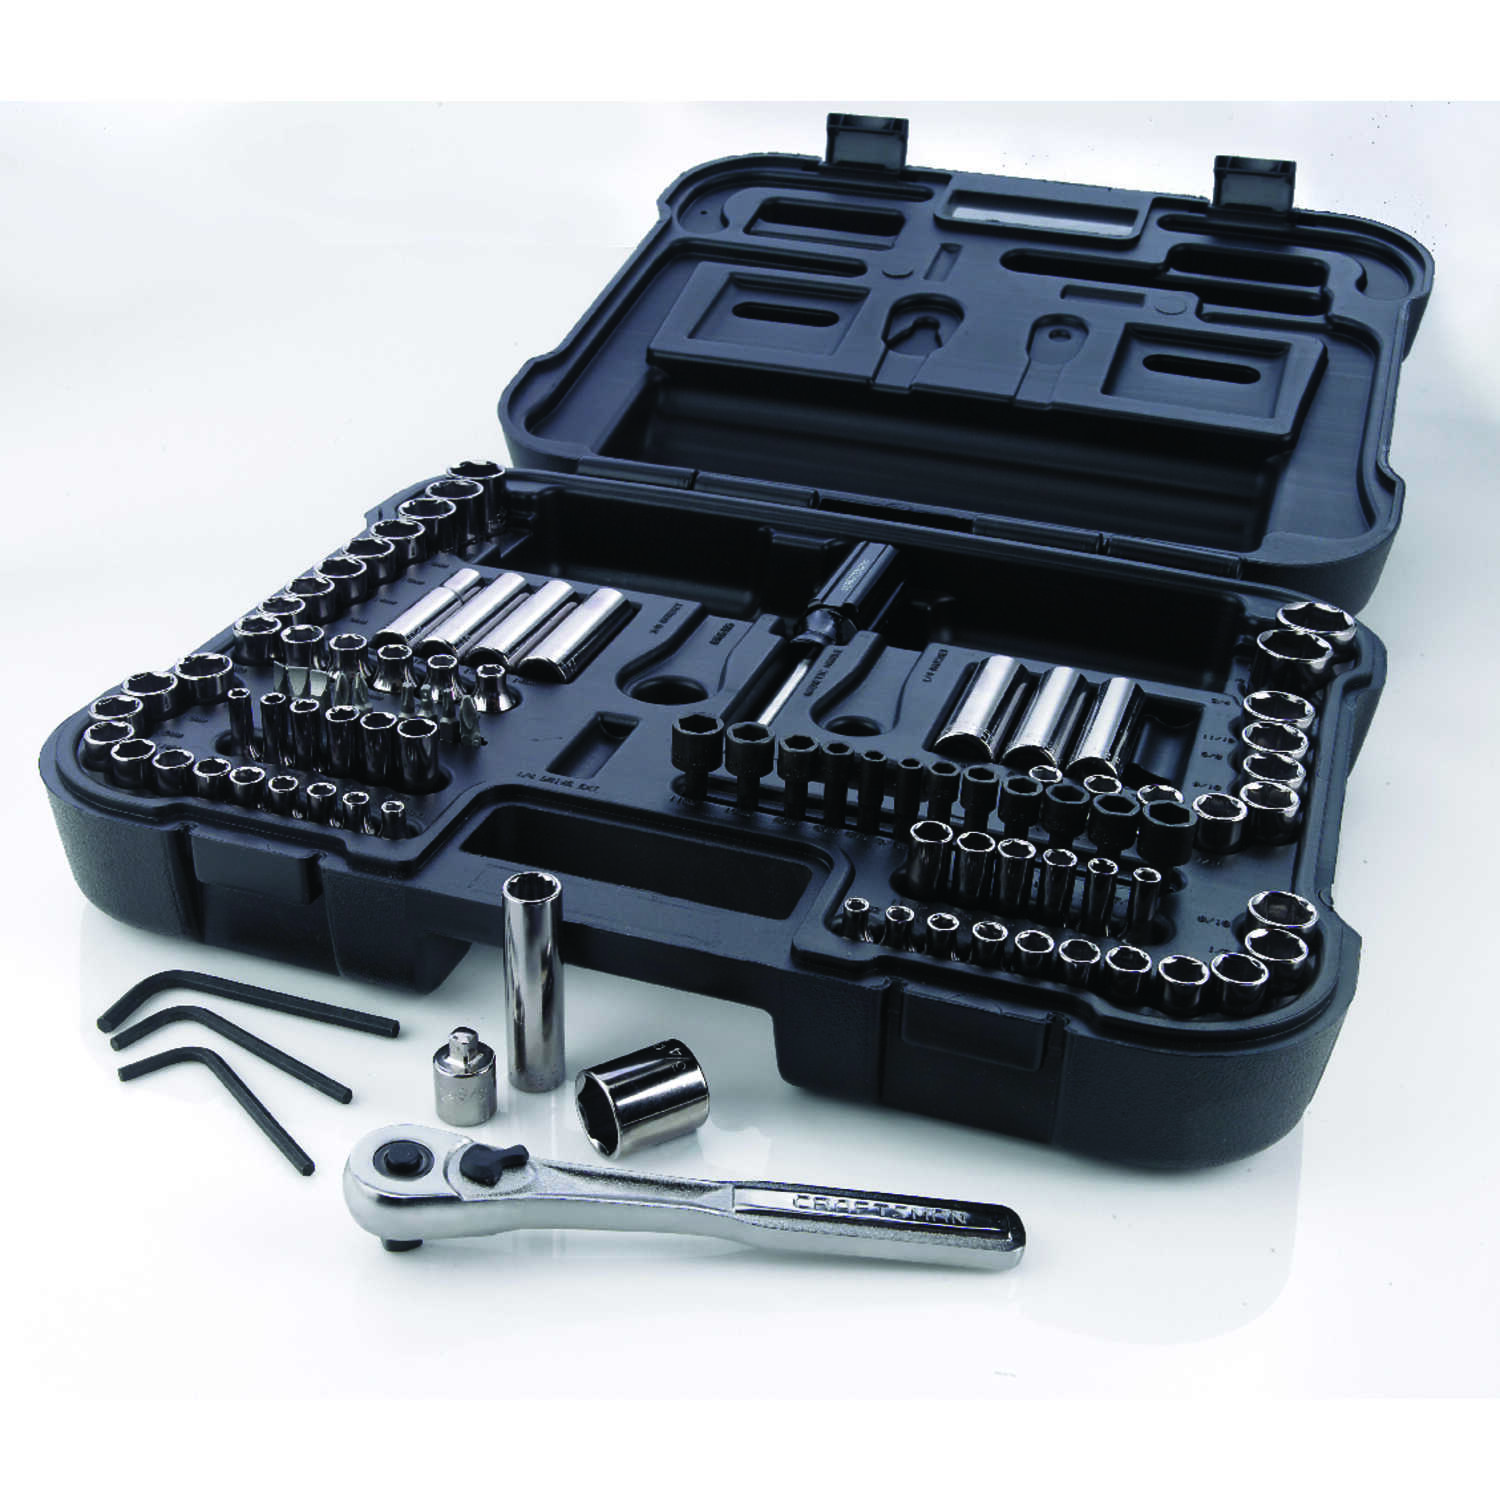 Craftsman 3 8 In X 1 4 And Drive Metric Sae 6 12 Point Mechanic S Tool Set 104 Ace Hardware